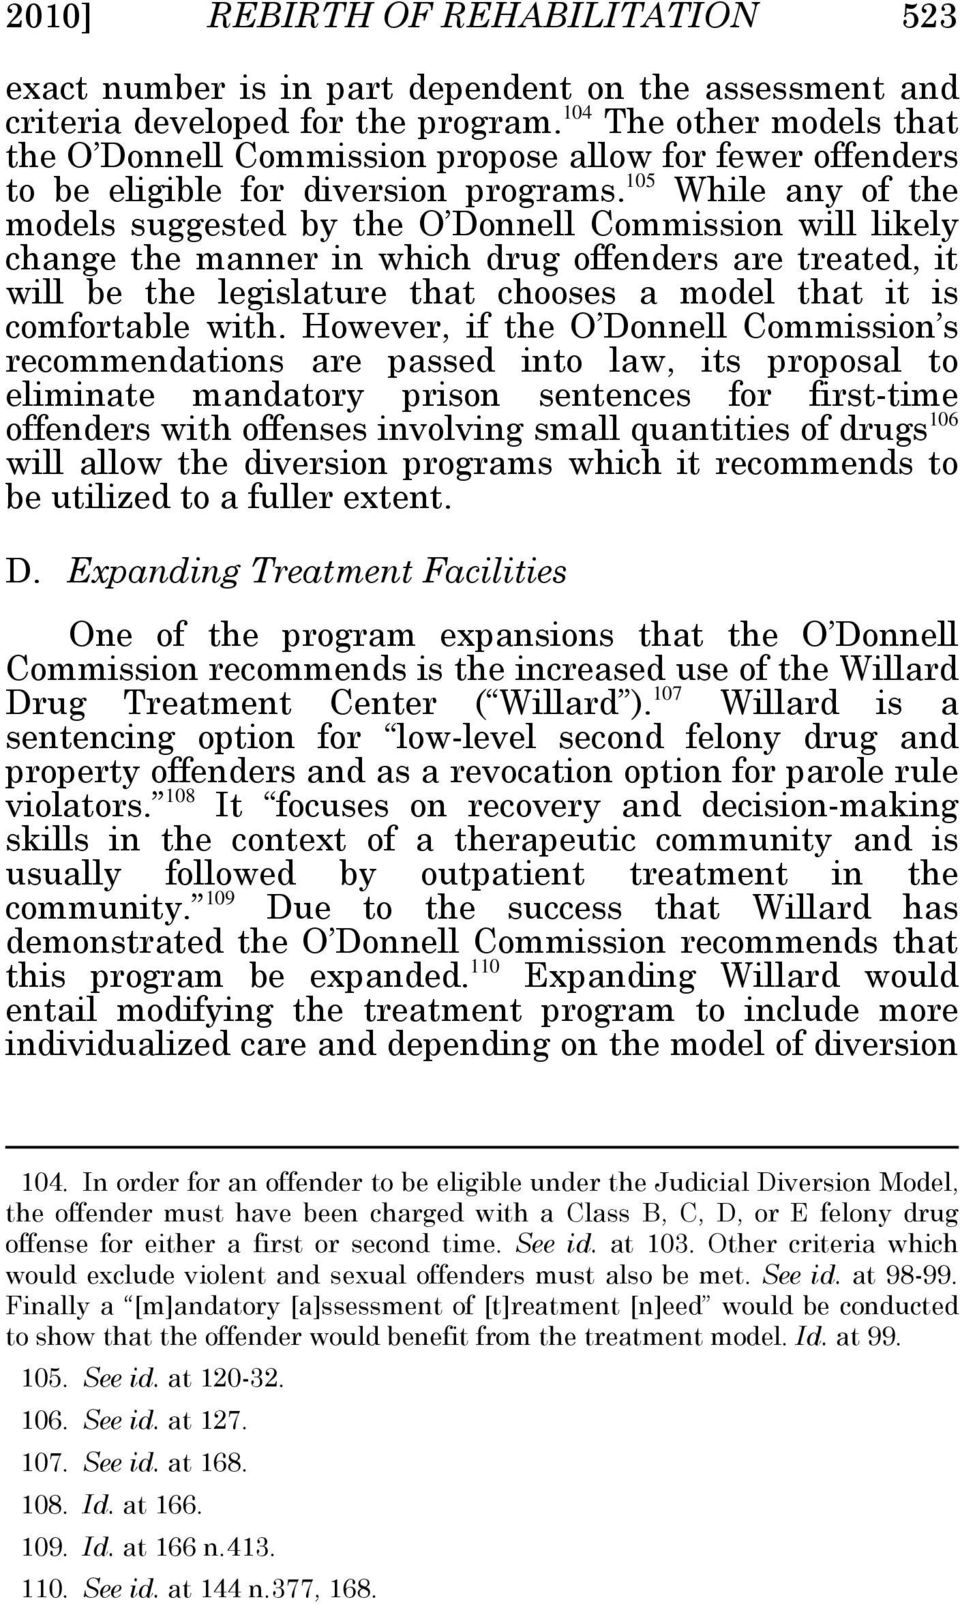 105 While any of the models suggested by the O Donnell Commission will likely change the manner in which drug offenders are treated, it will be the legislature that chooses a model that it is